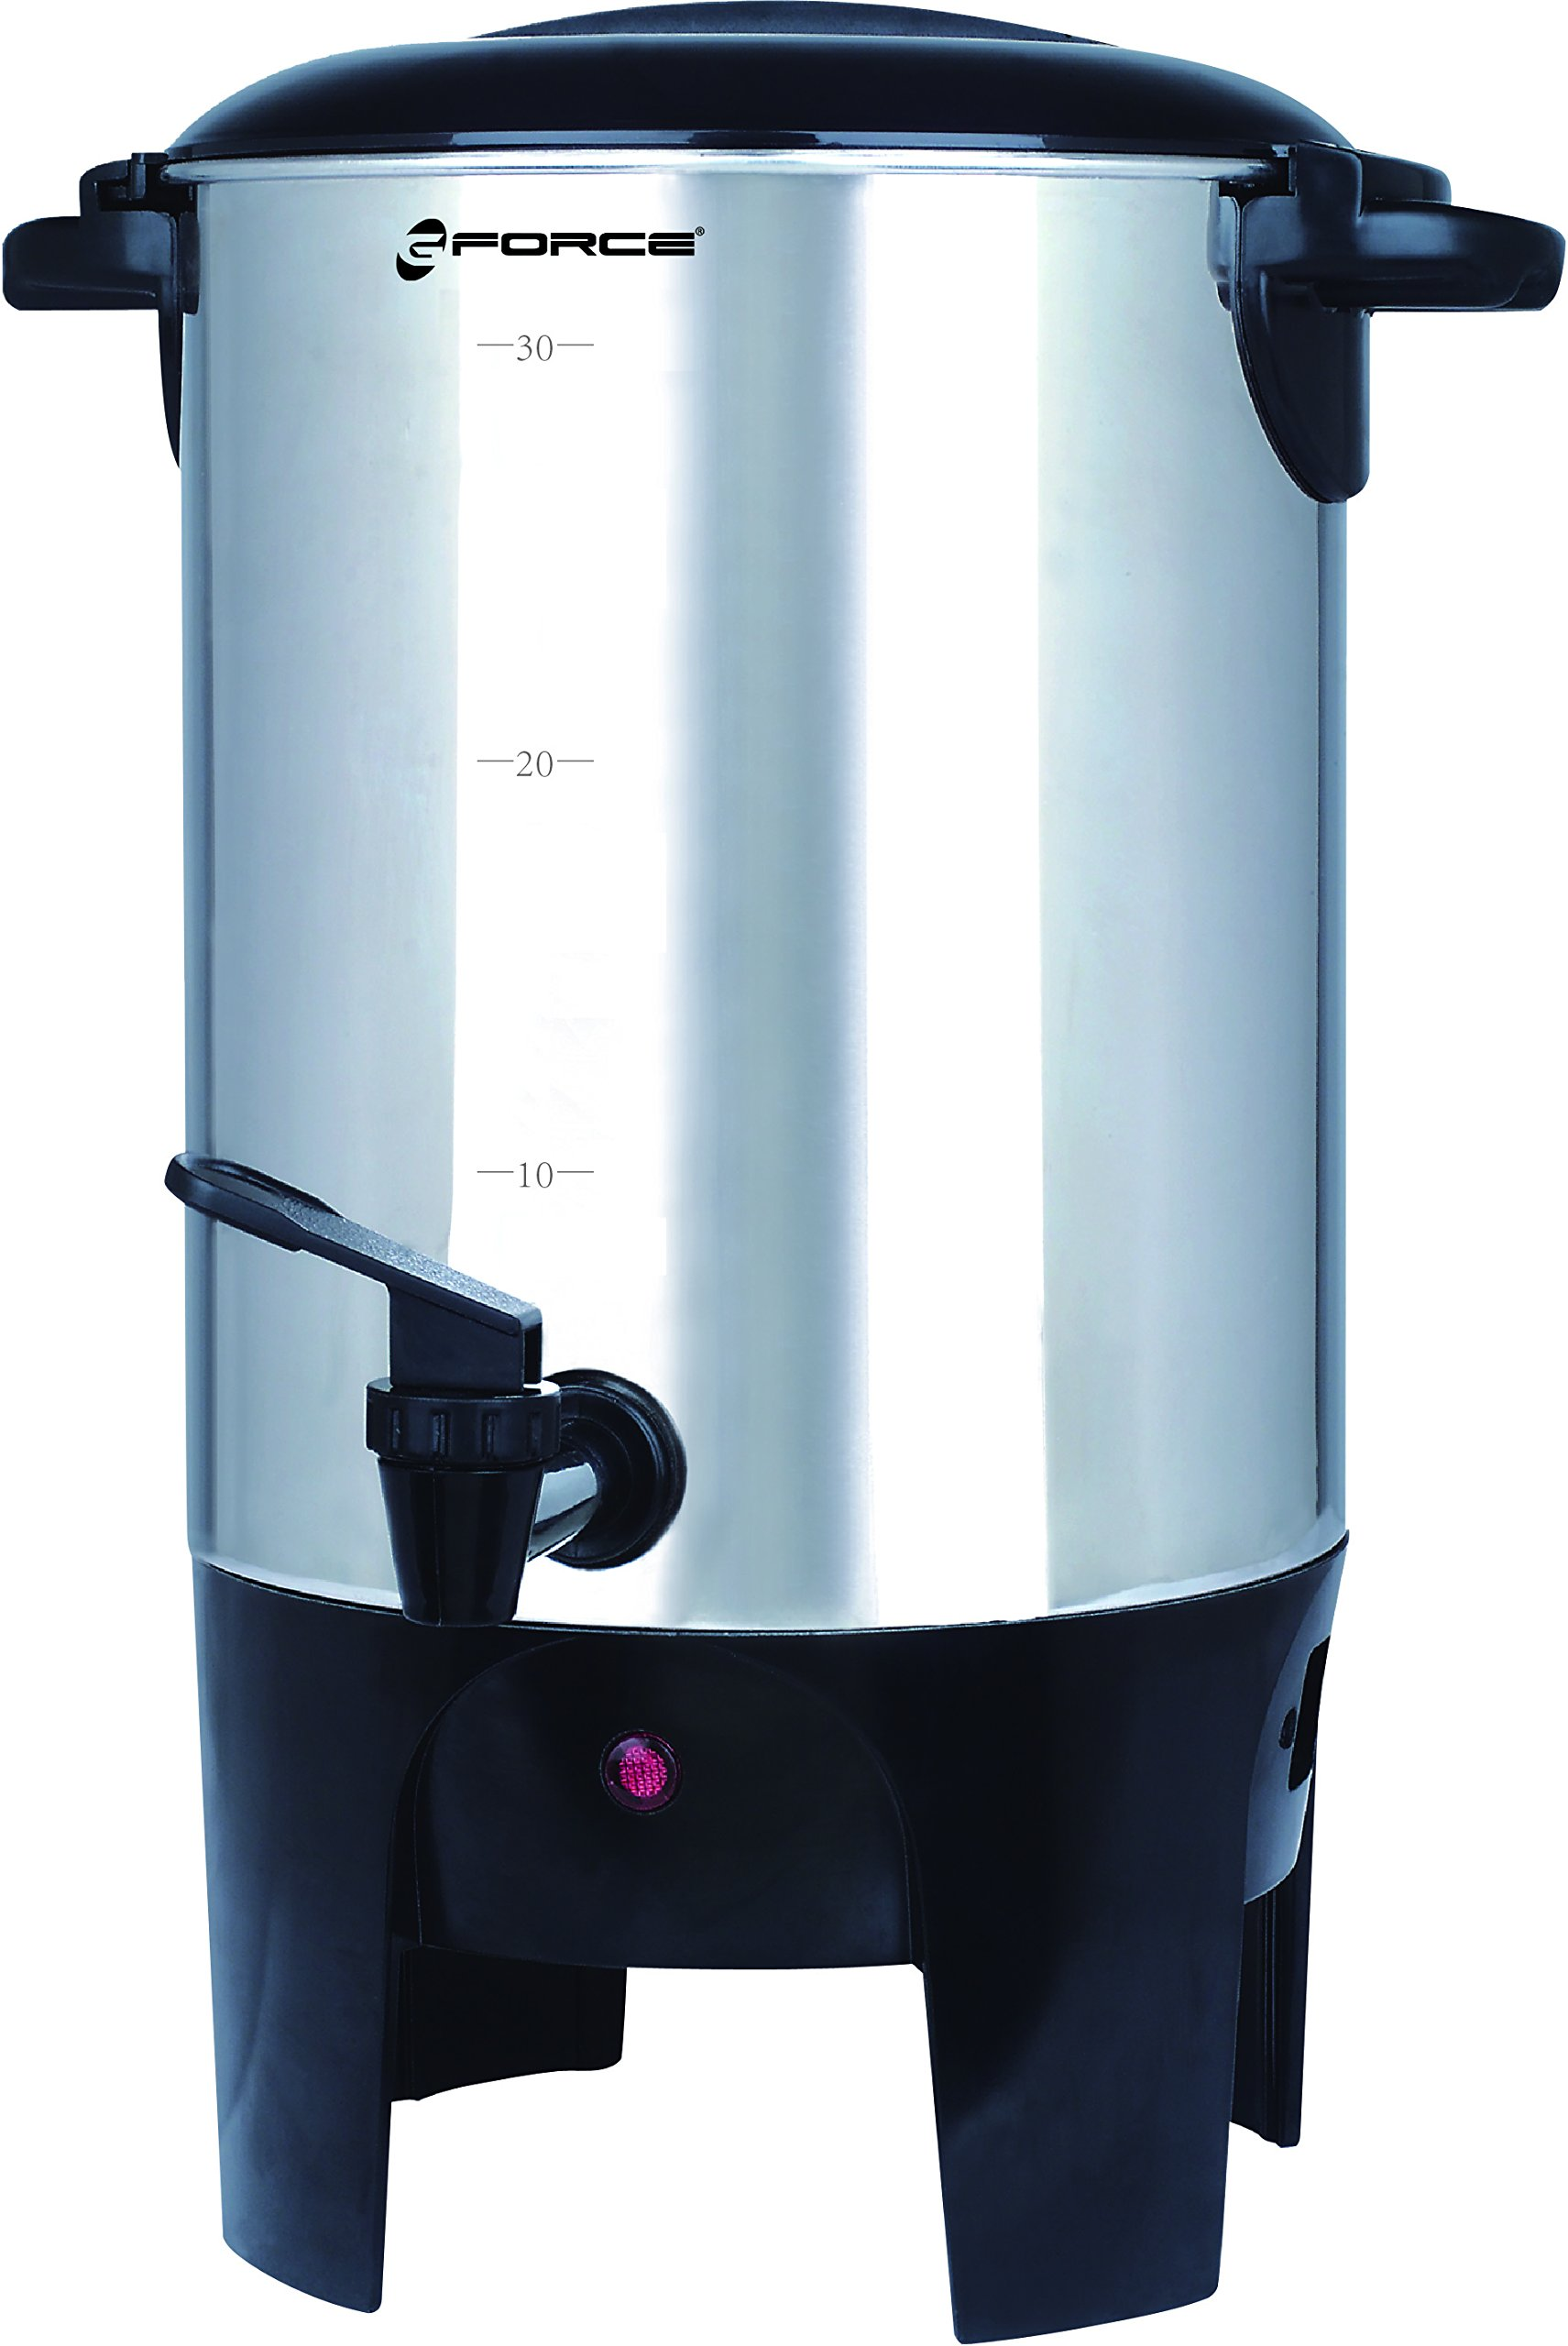 GForce GF-P1021-990 Luxury 40-Cup Coffeemaker and Hot Water Urn, Stainless Steel Silver